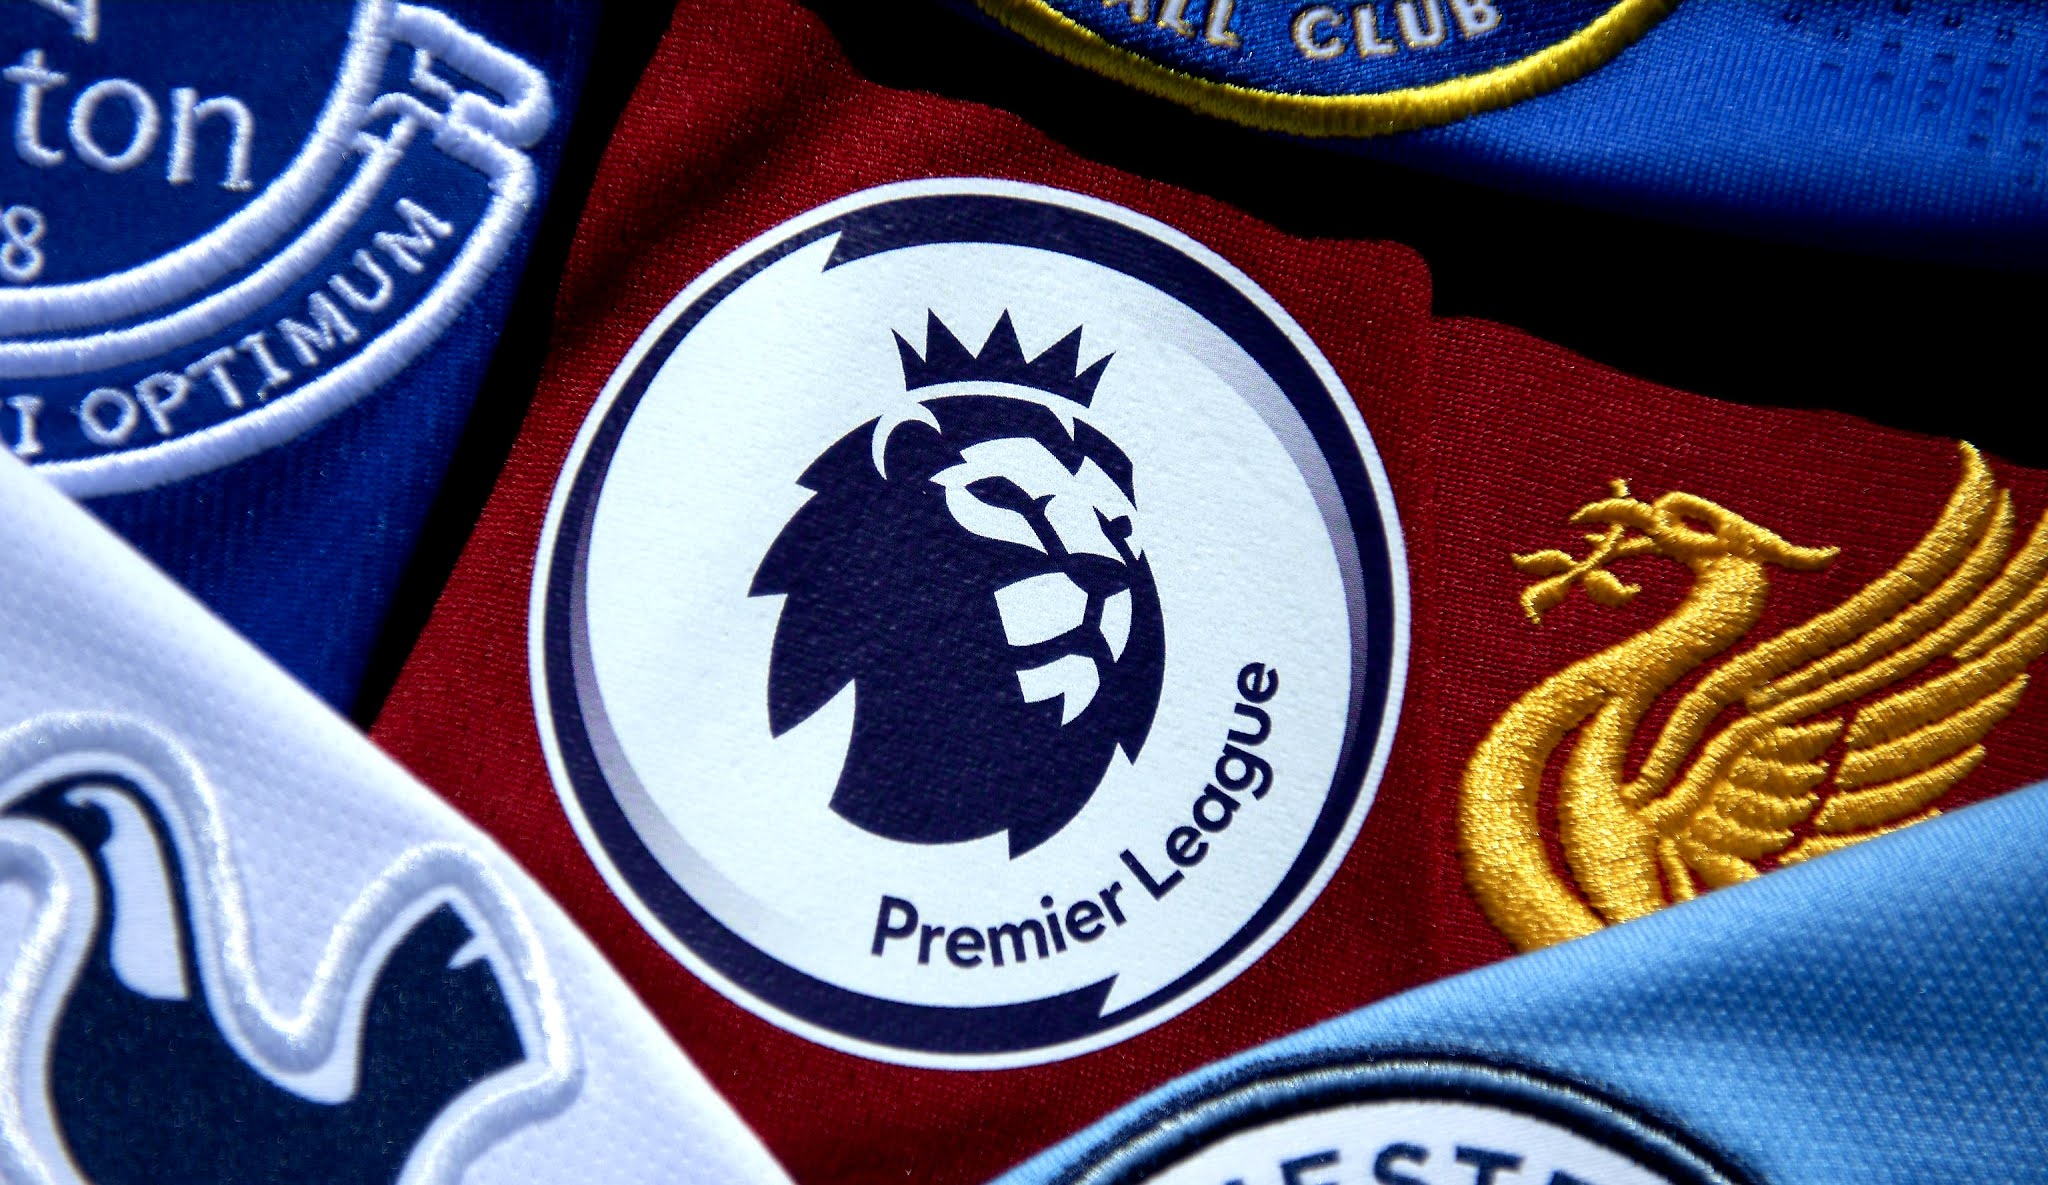 Premier League confirms five new positive coronavirus case.